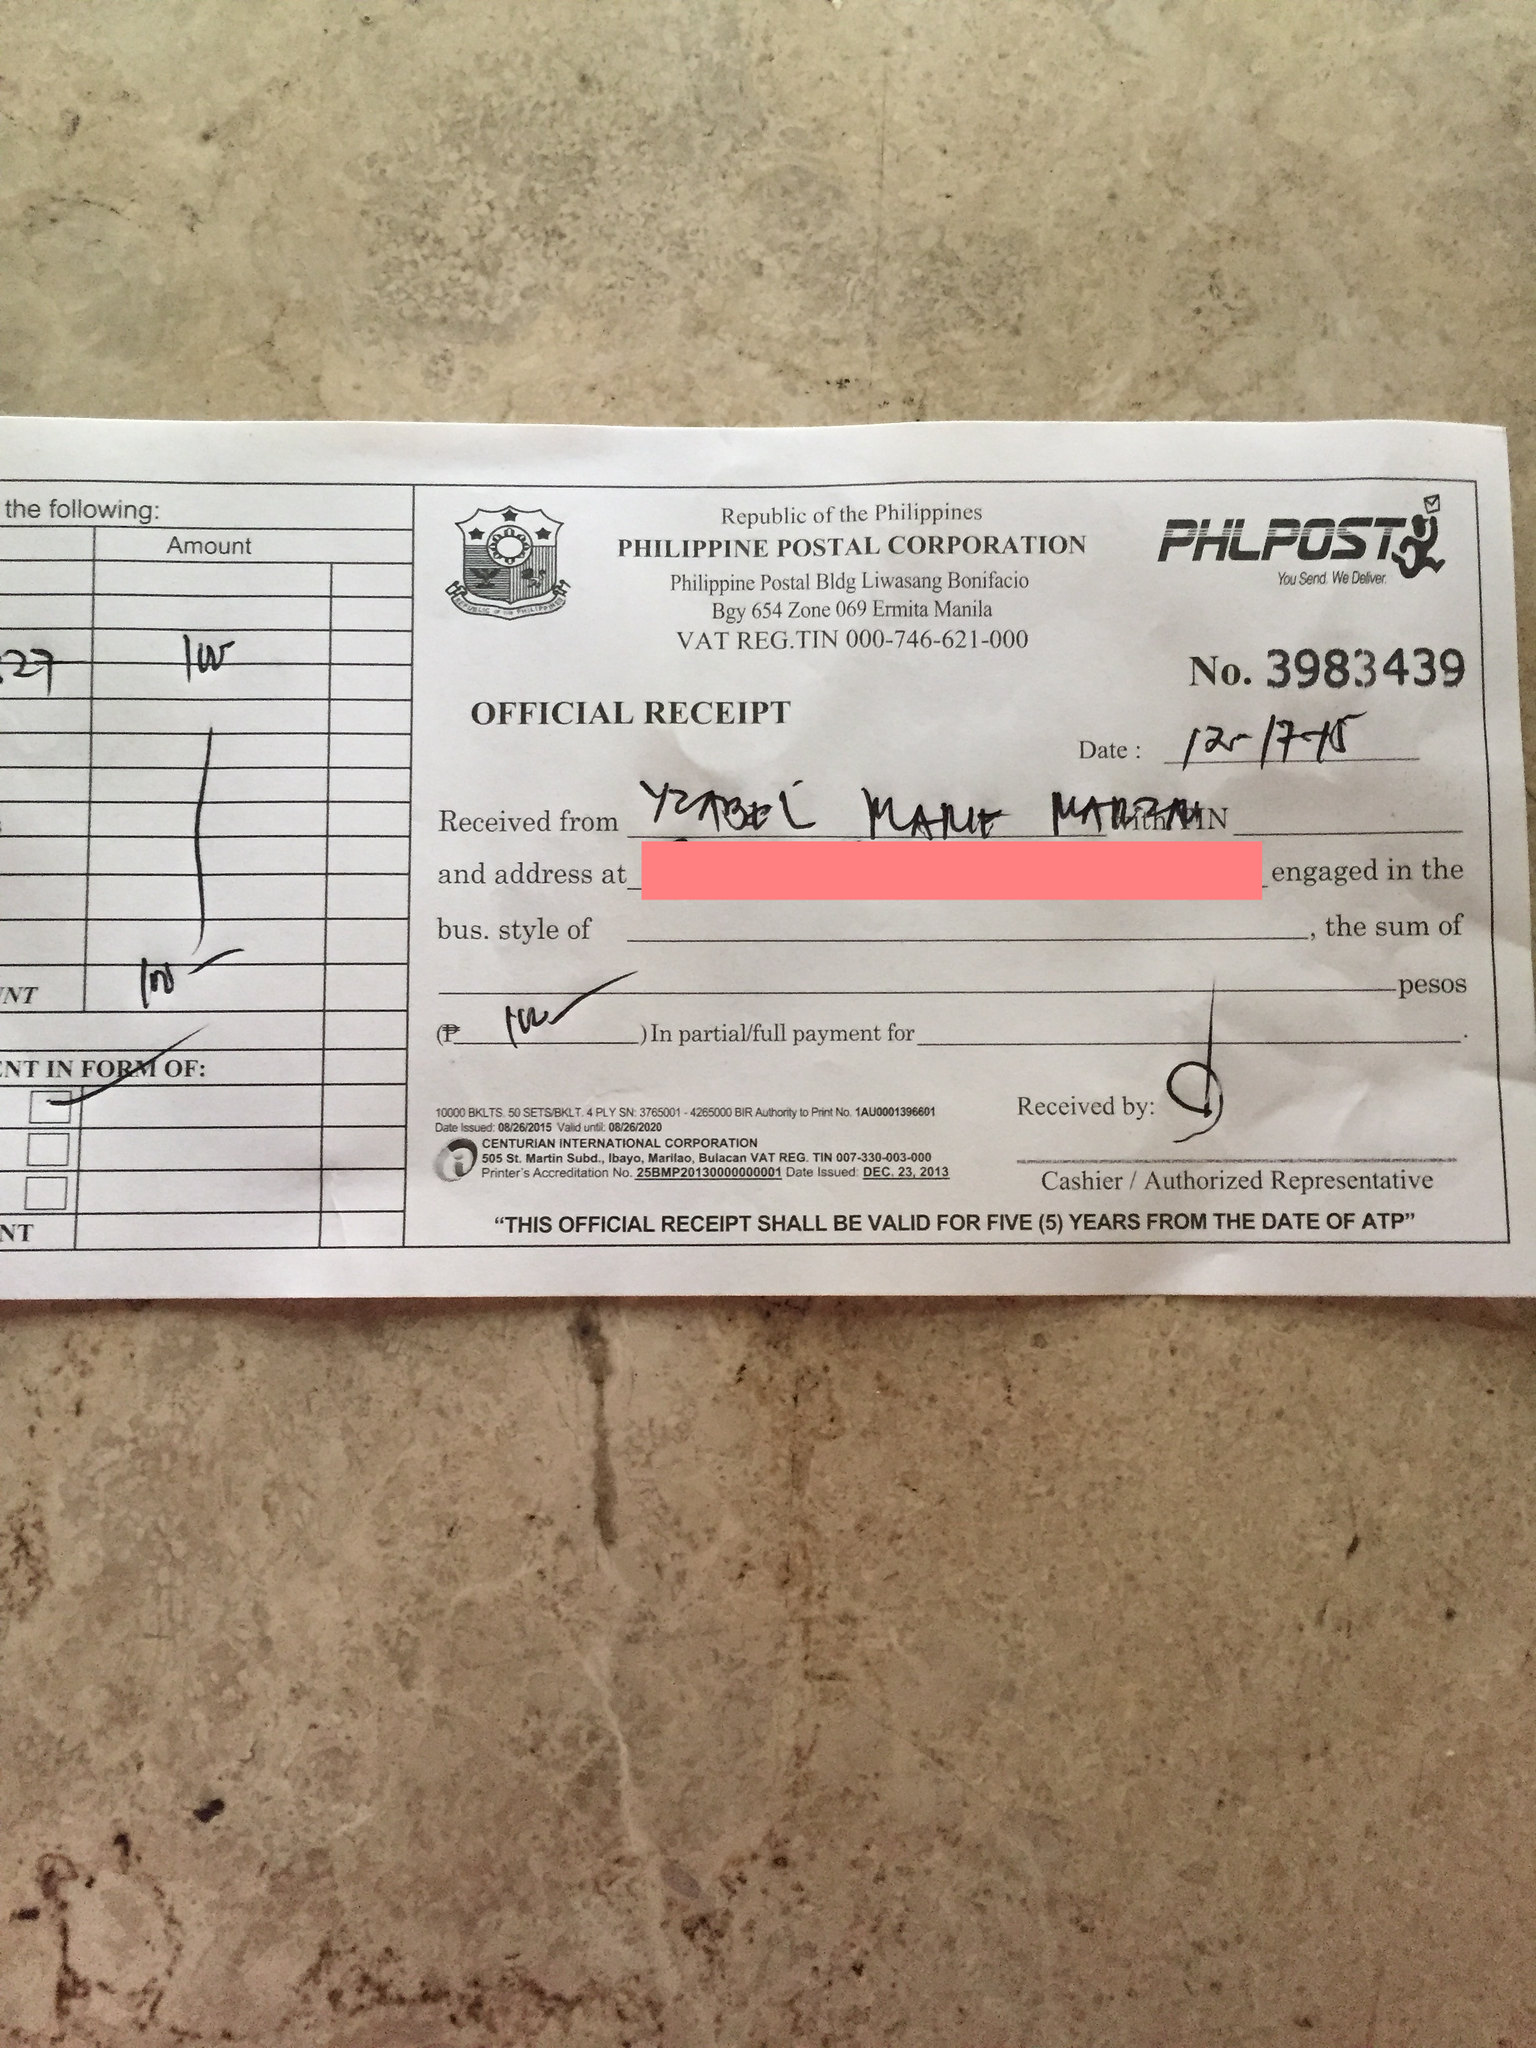 PhilPost official receipt